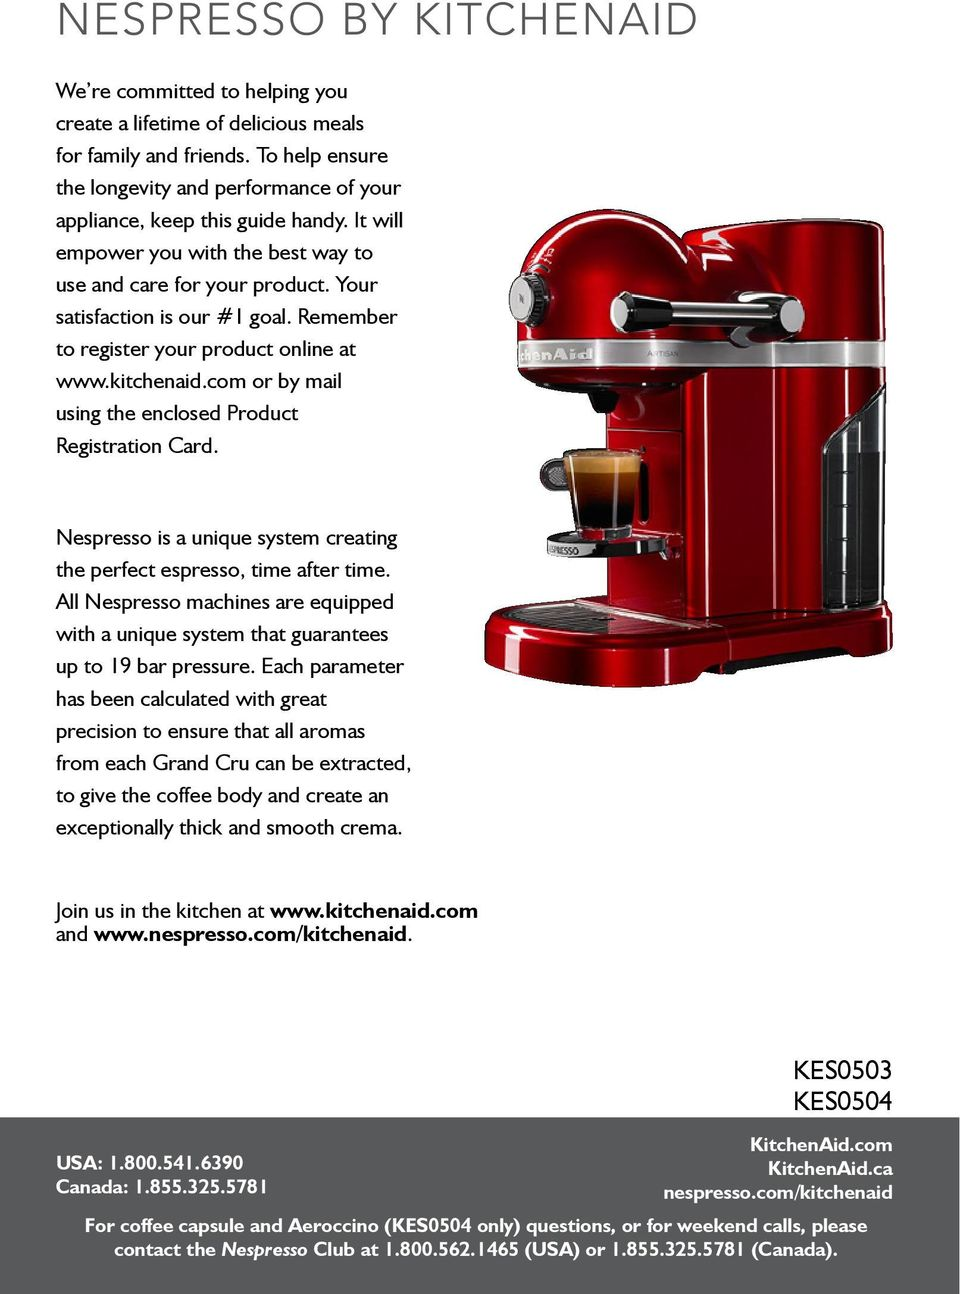 Remember to register your product online at www.kitchenaid.com or by mail using the enclosed Product Registration Card. Nespresso is a unique system creating the perfect espresso, time after time.